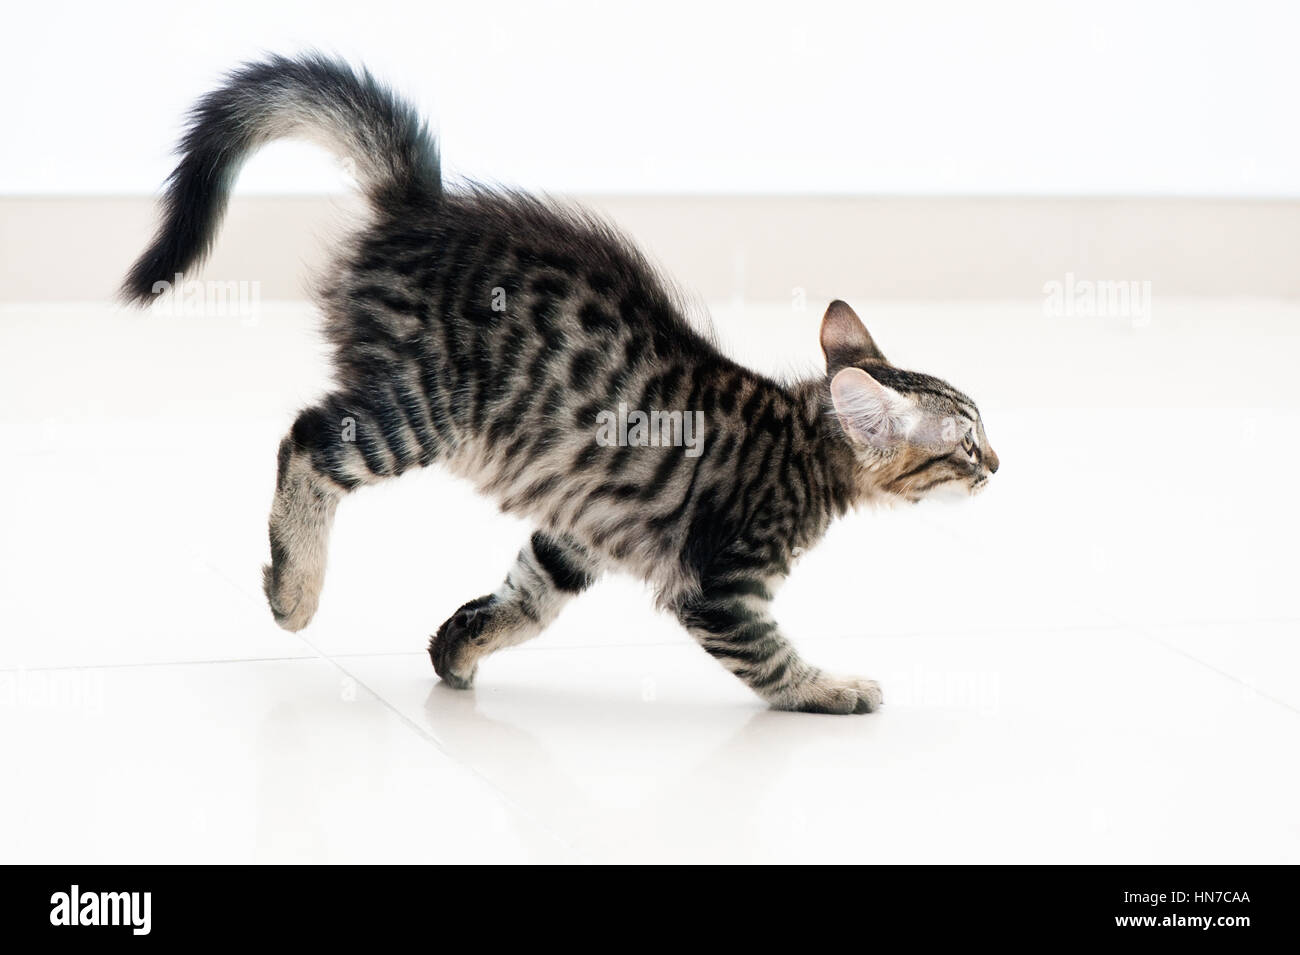 Tabby kitten running - Stock Image